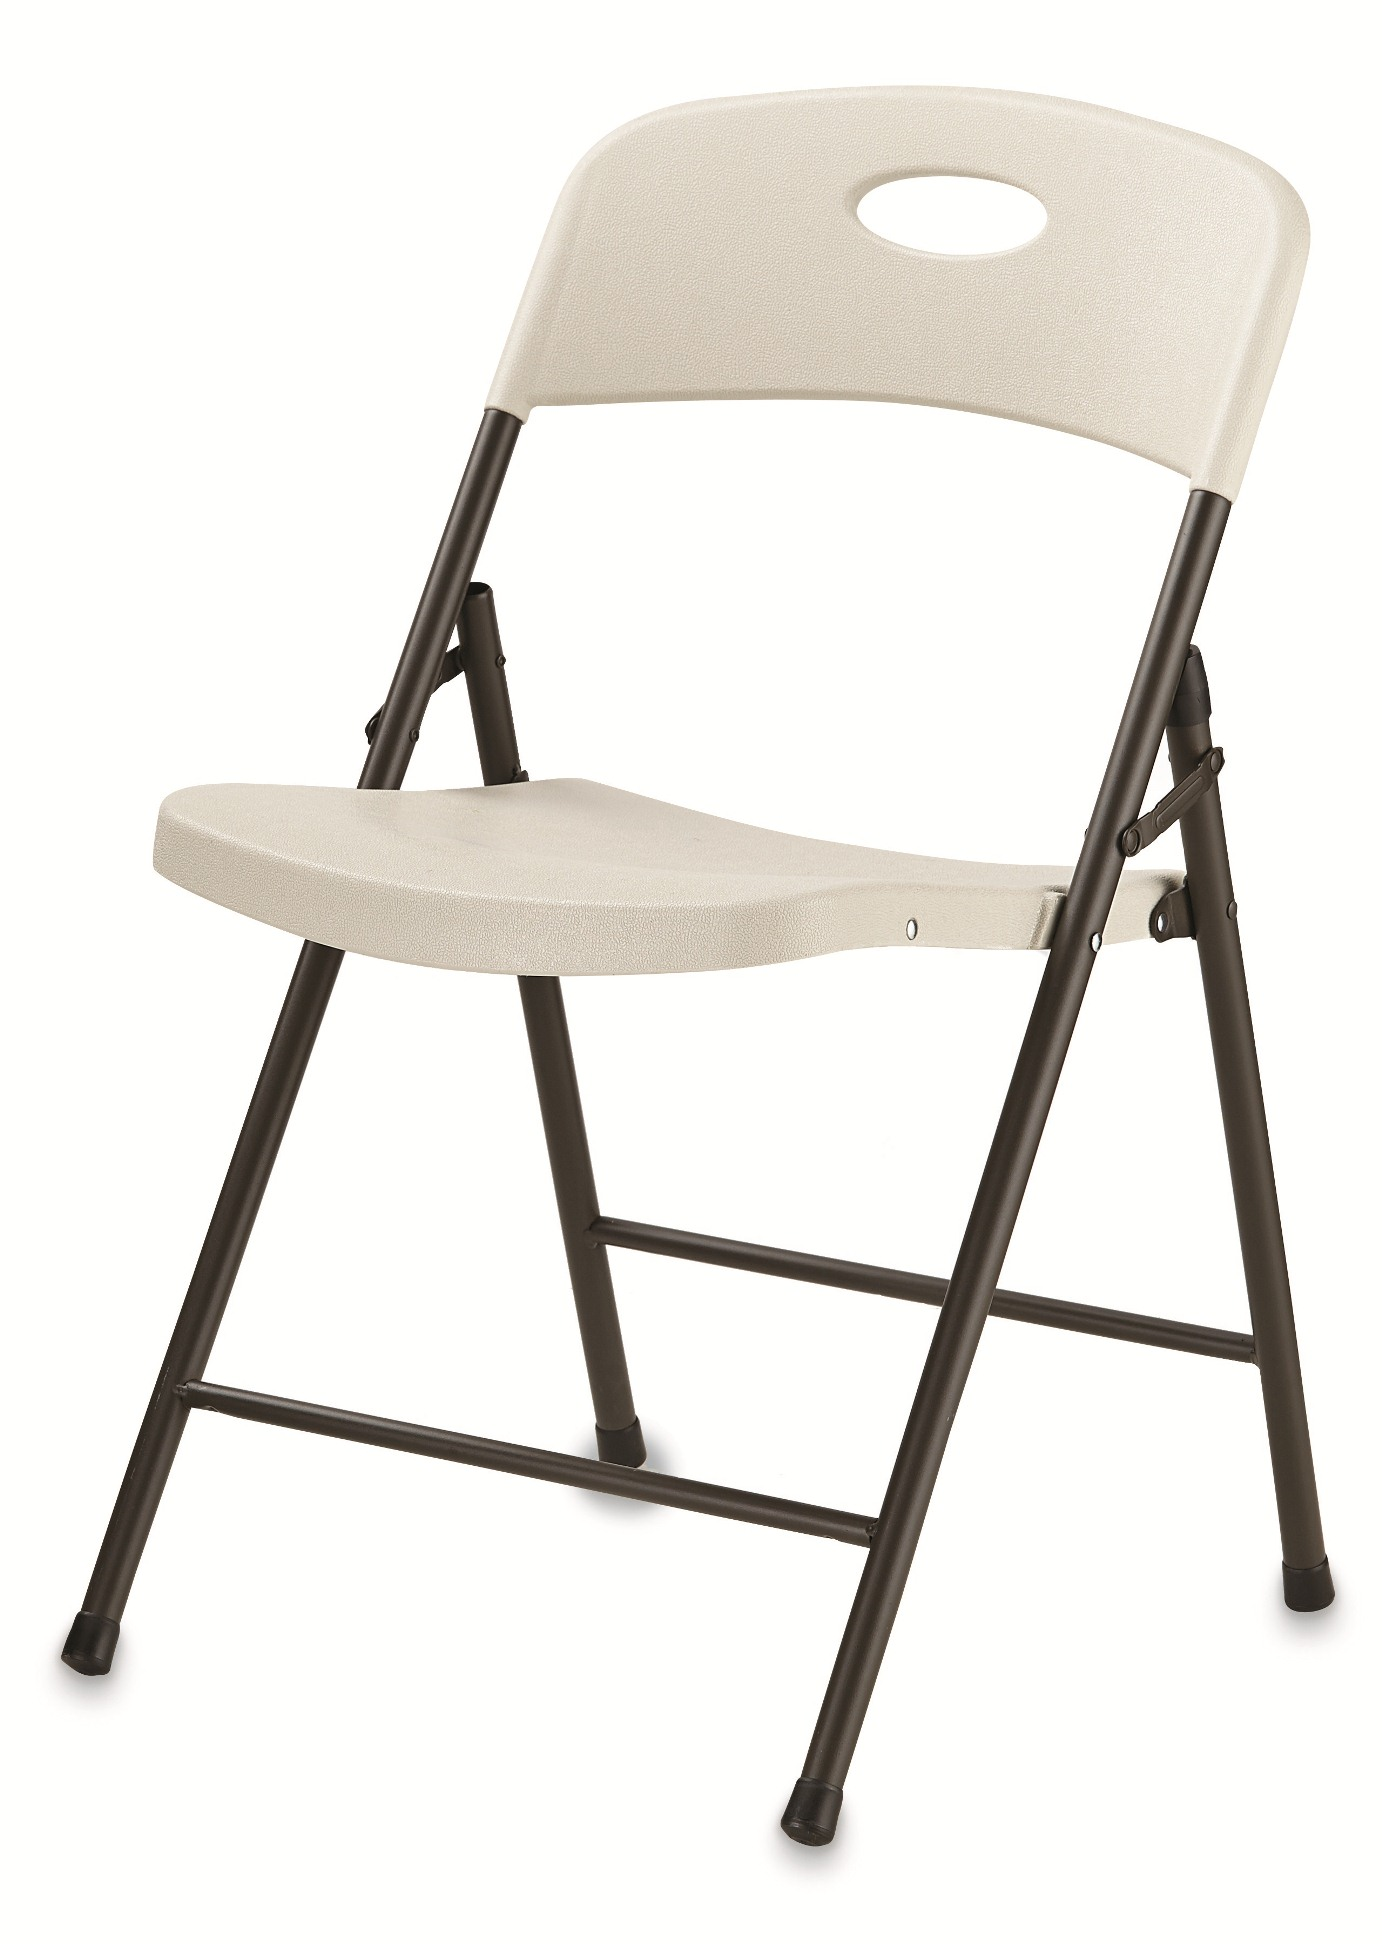 kmart table and chairs review office zambia northwest territory lightweight folding chair fitness